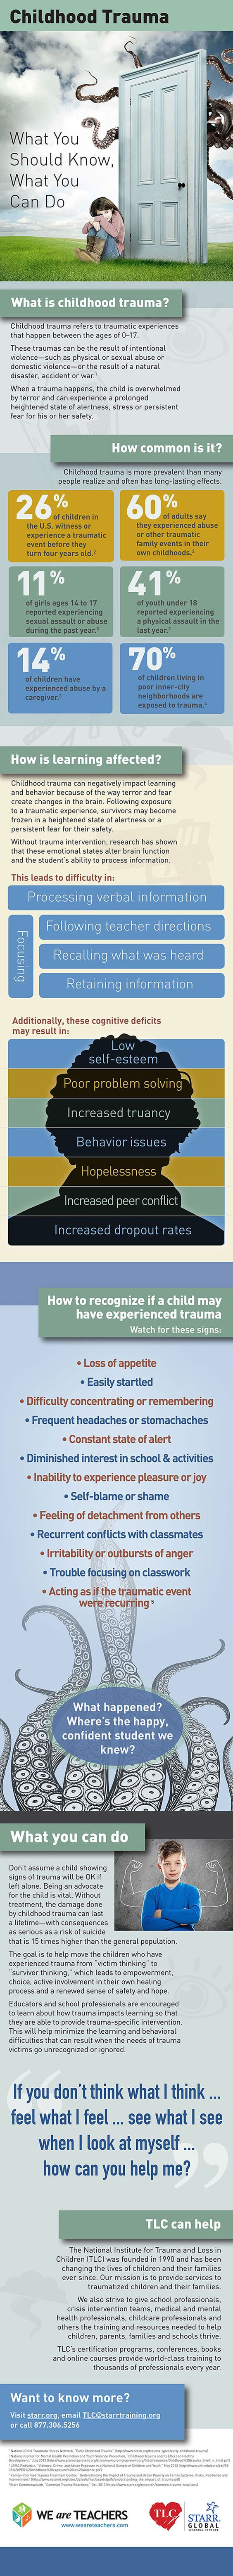 Childhood Trauma - What You Should Know, What You Can Do [PTSD] [Infographic]